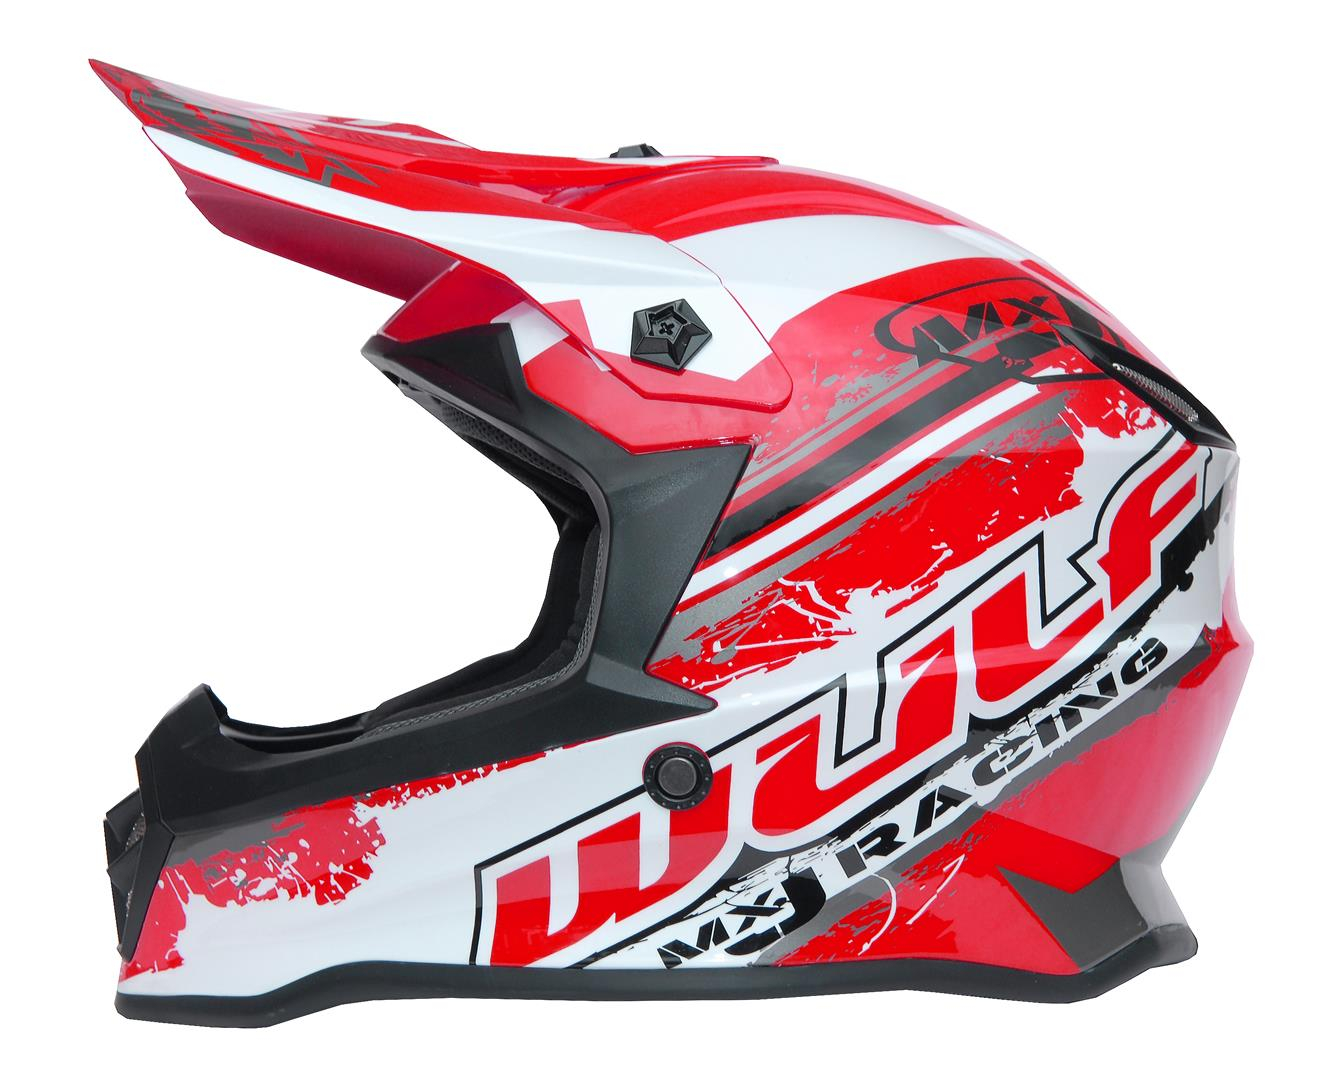 New 2020 Wulfsport Kids Off Road Pro Helmet - Red